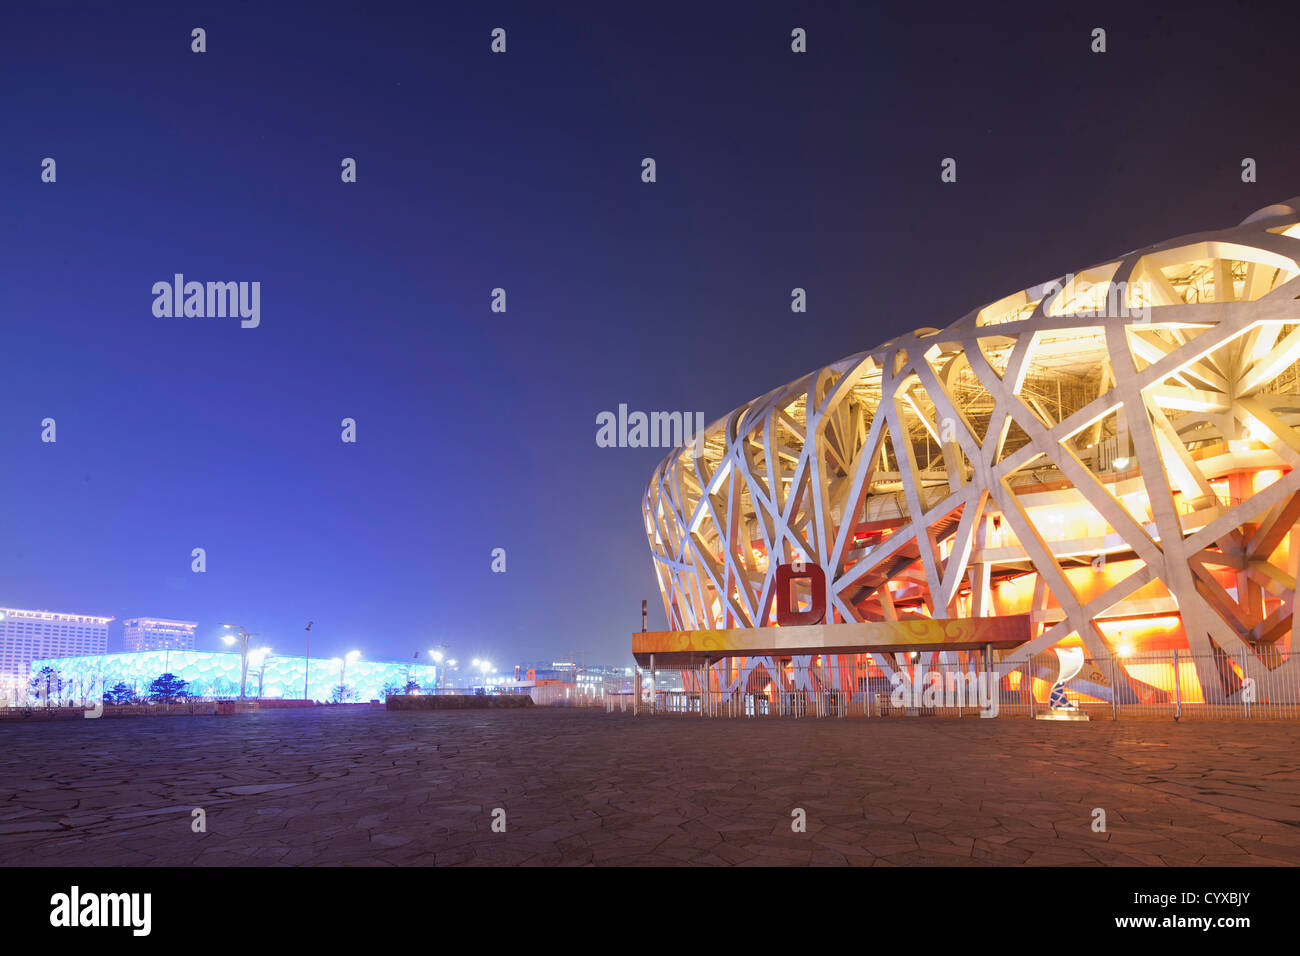 Chine, Beijing National Stadium, dans la nuit Photo Stock